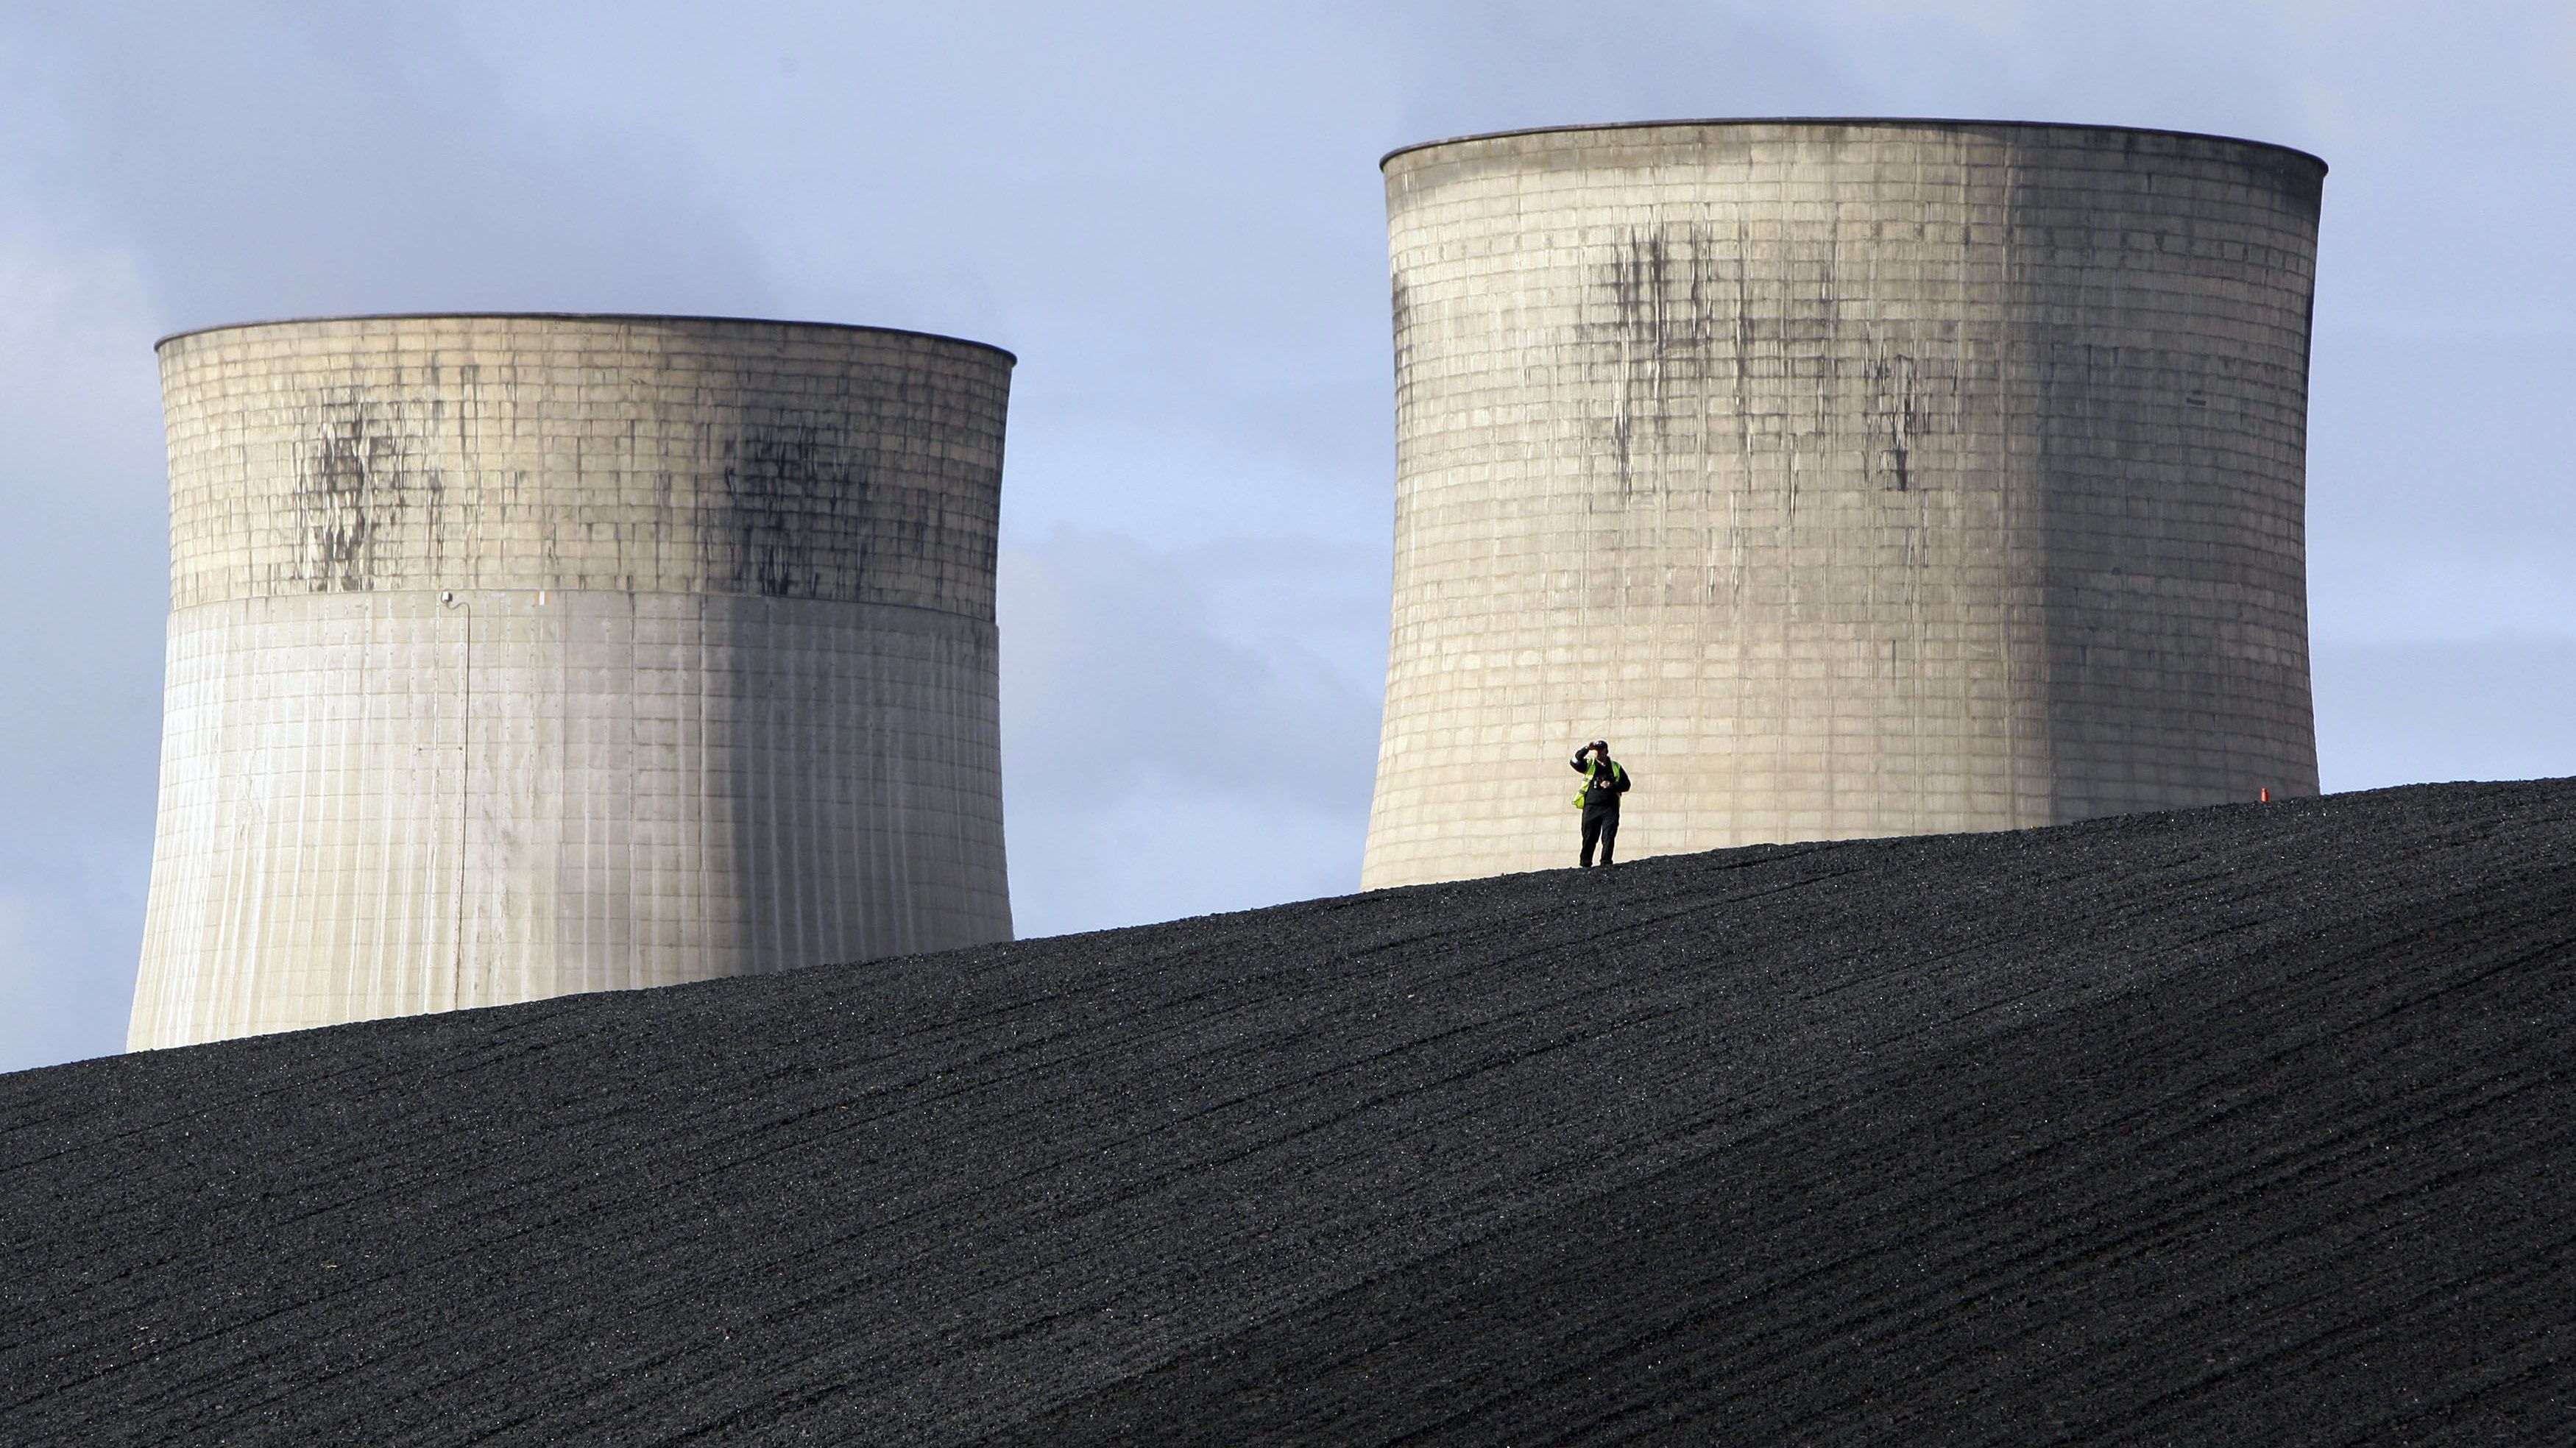 A security guard watches from a coal heap during a climate change protest at Ratcliffe Power Station at Ratcliffe-on-Soar, central England October 17, 2009.